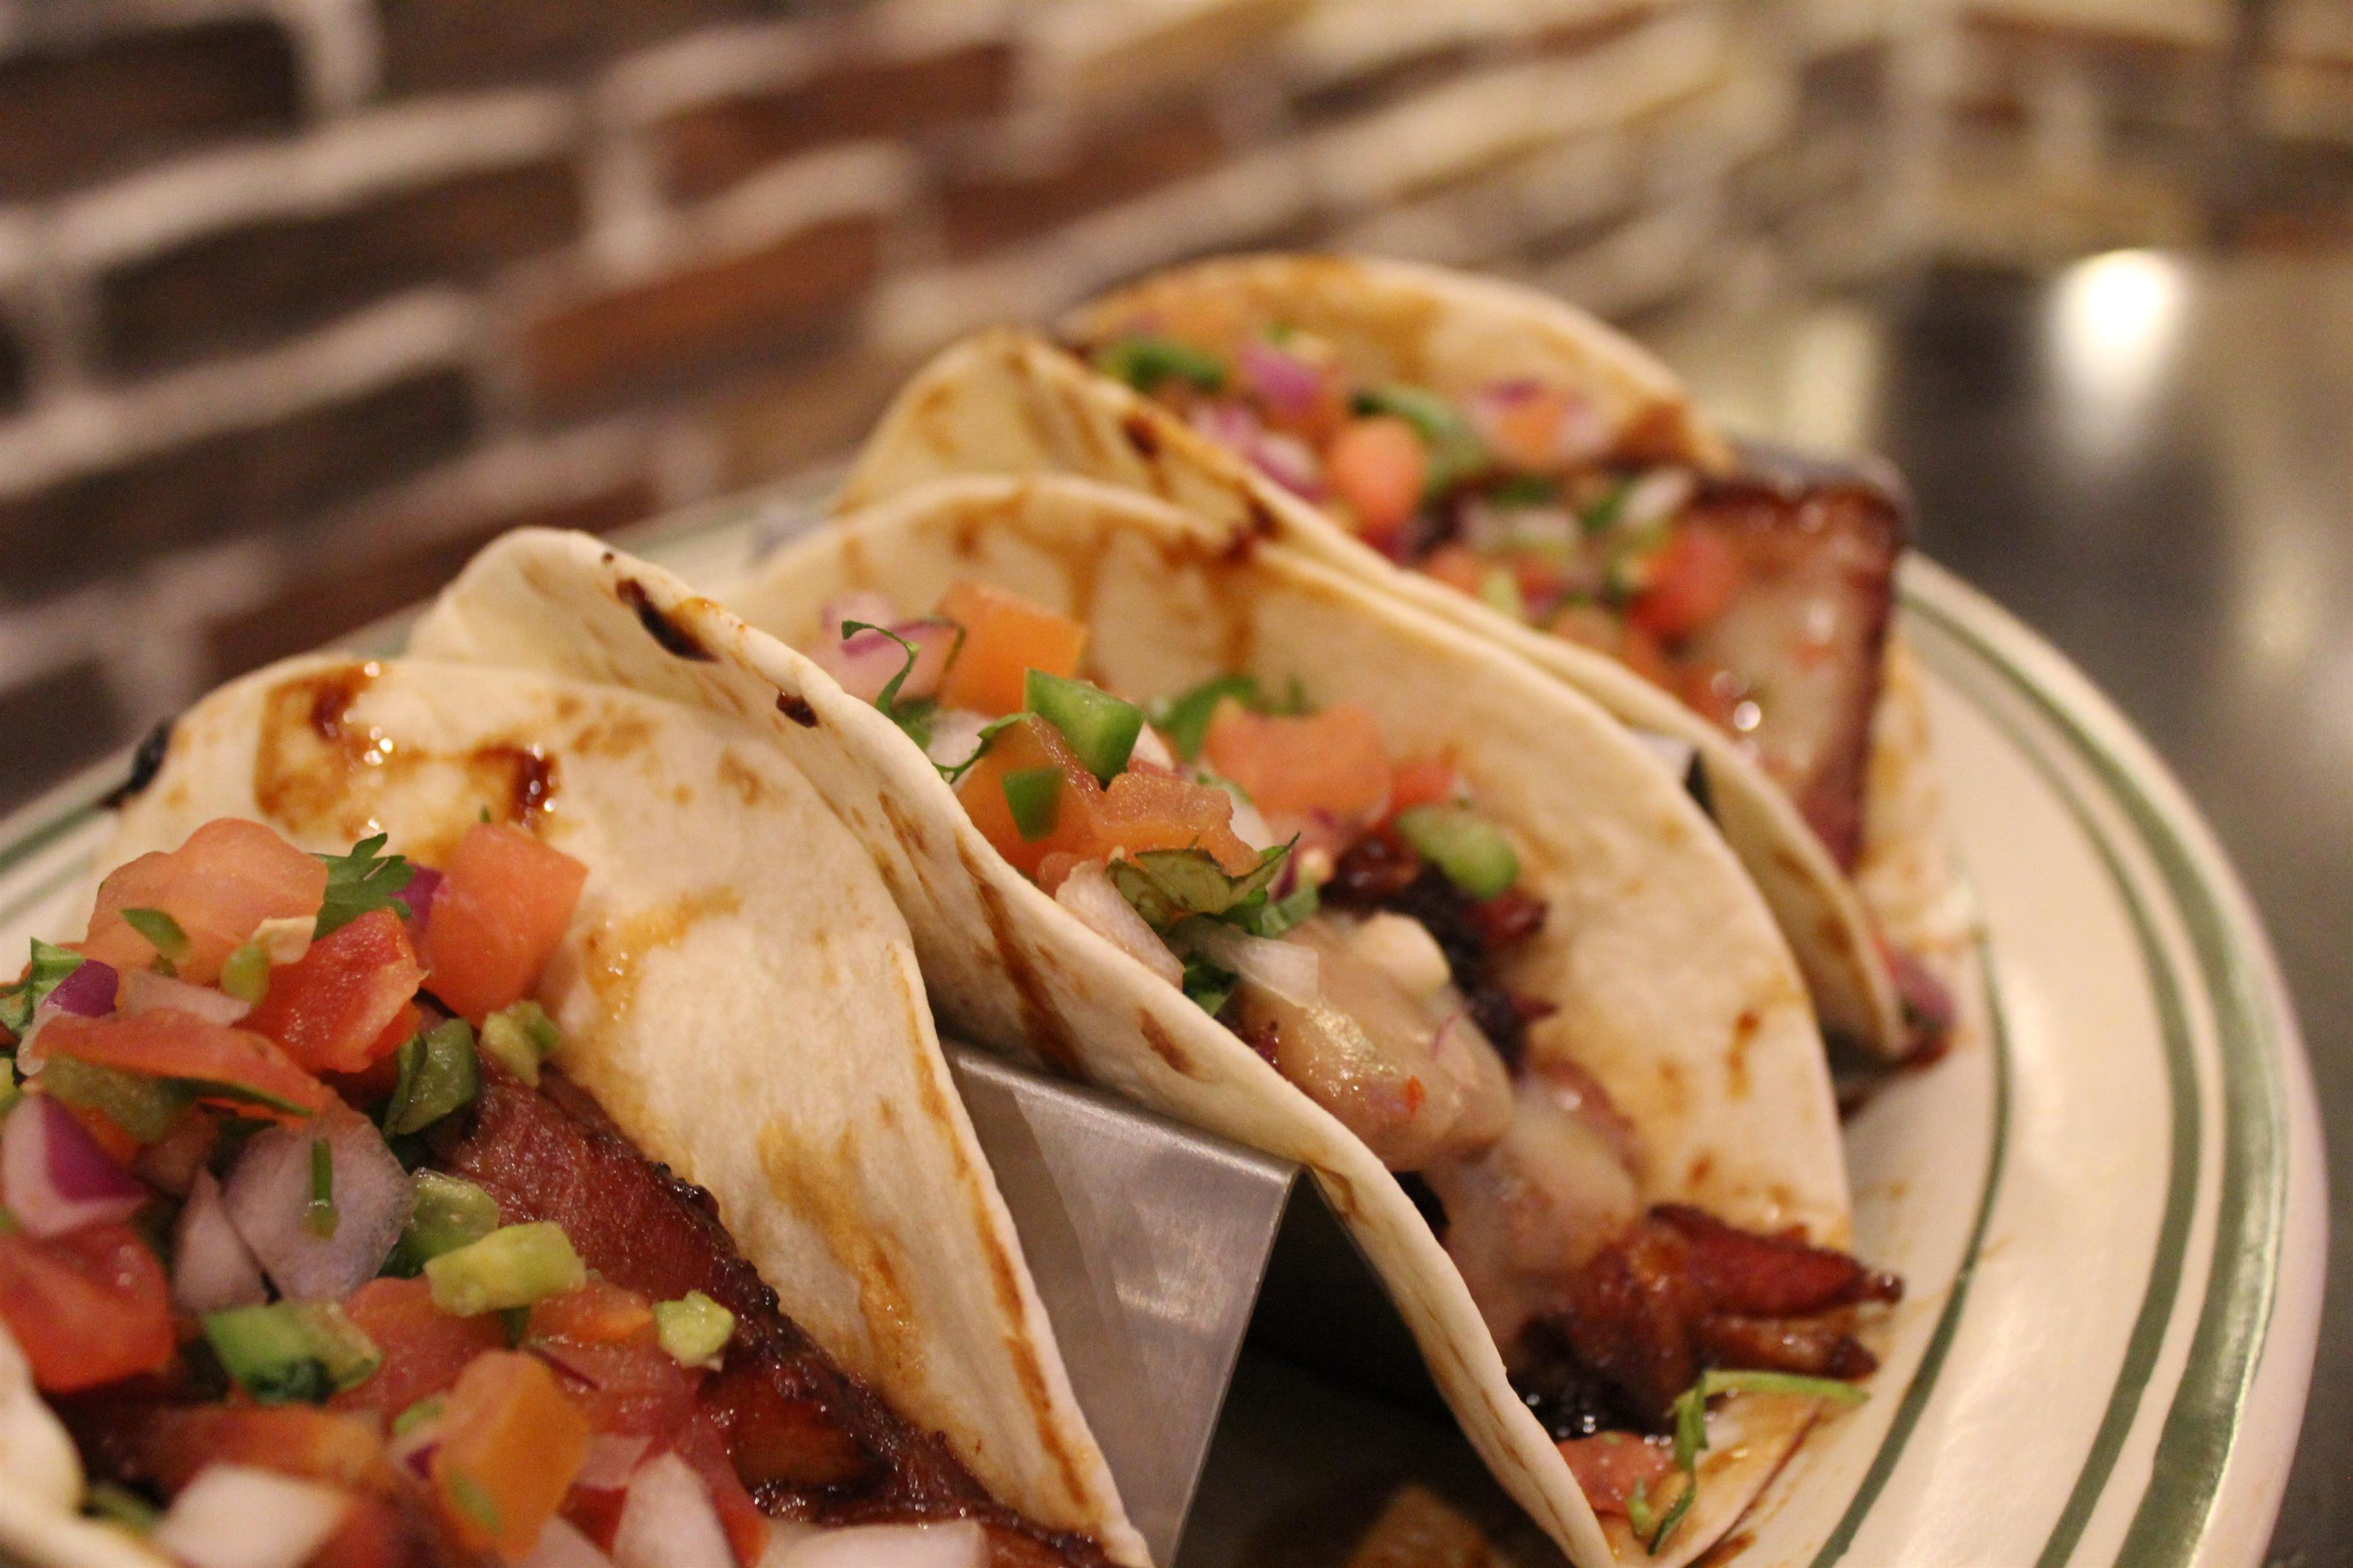 Street tacos. Brisket, pepper jack cheese, pico de gallo, crispy corn tortilla chips, salsa.